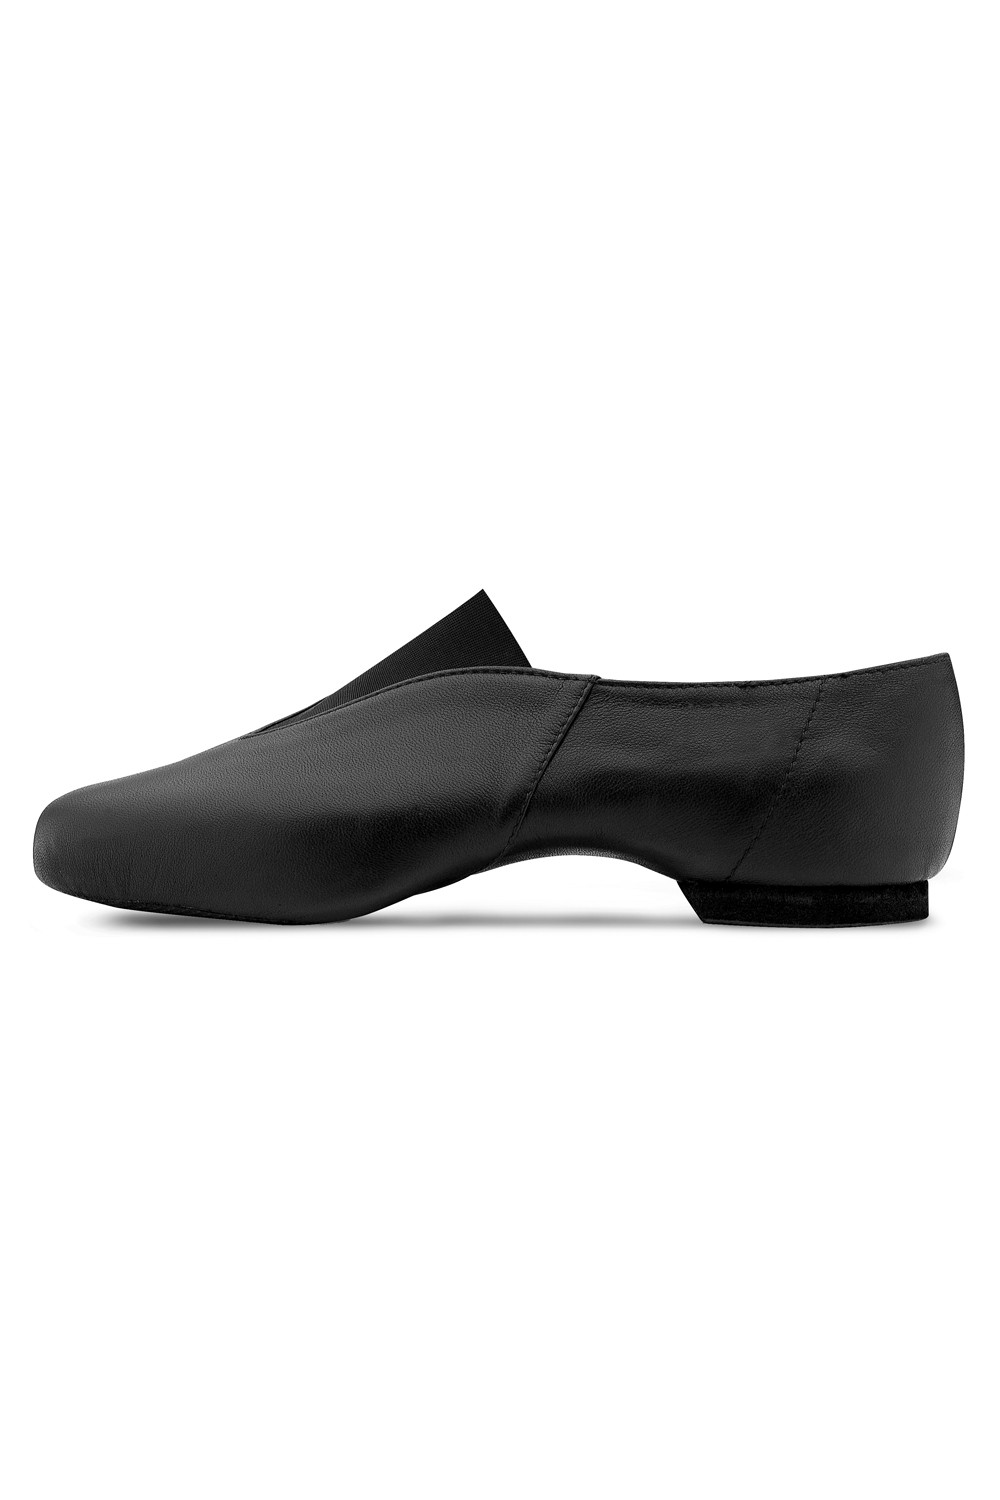 Pure Jazz - Girls Girl's Jazz Shoes